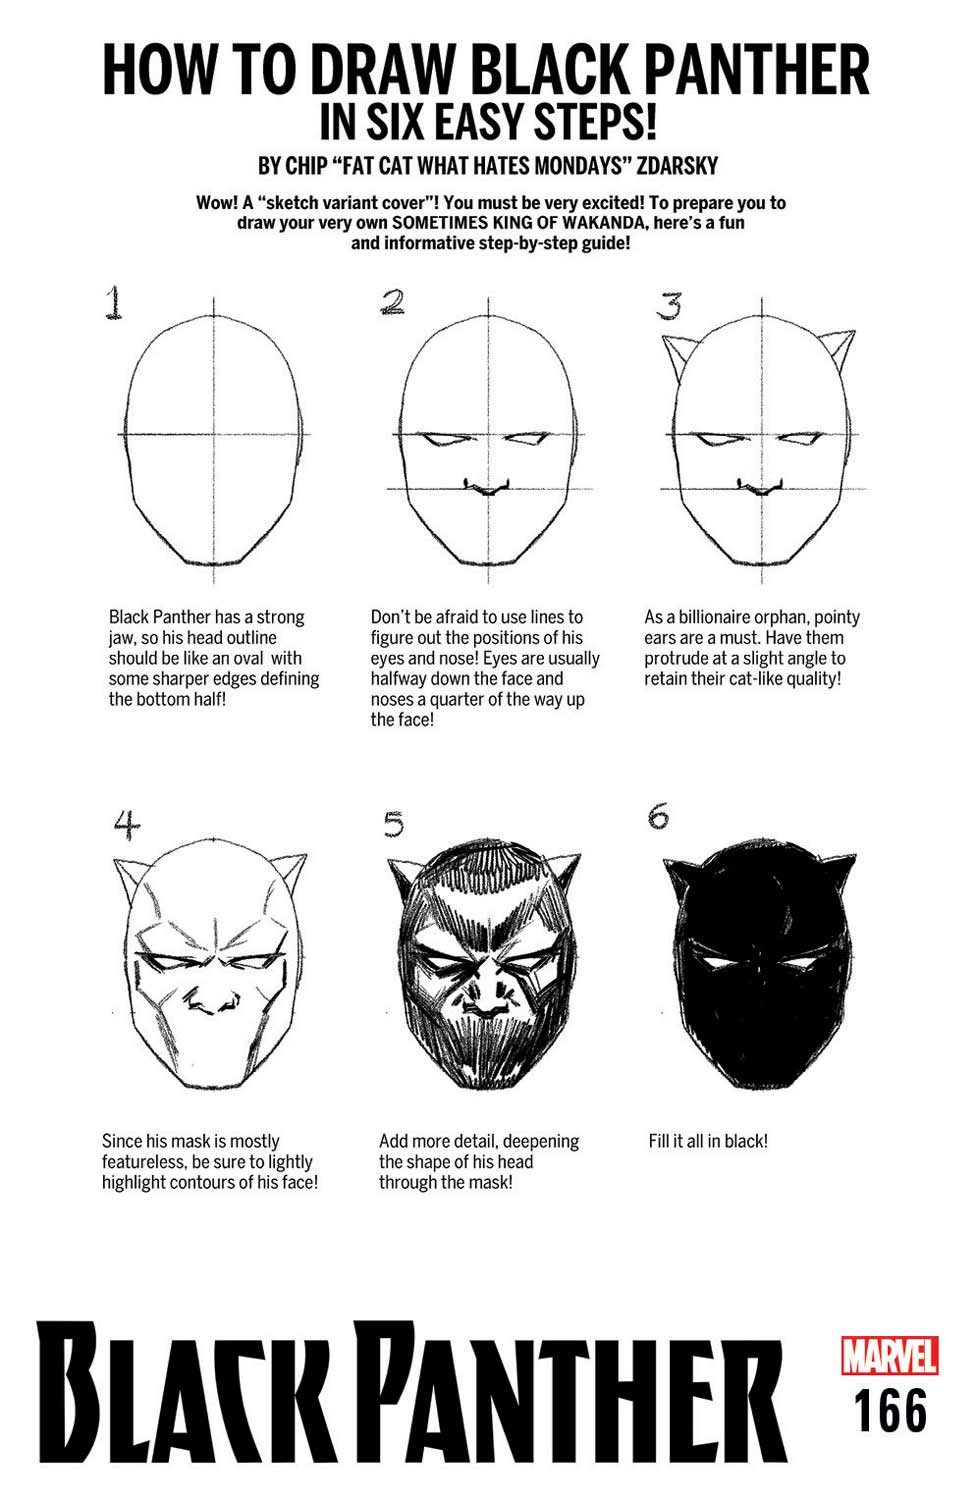 black panther vol 1 166 how to draw variantjpg